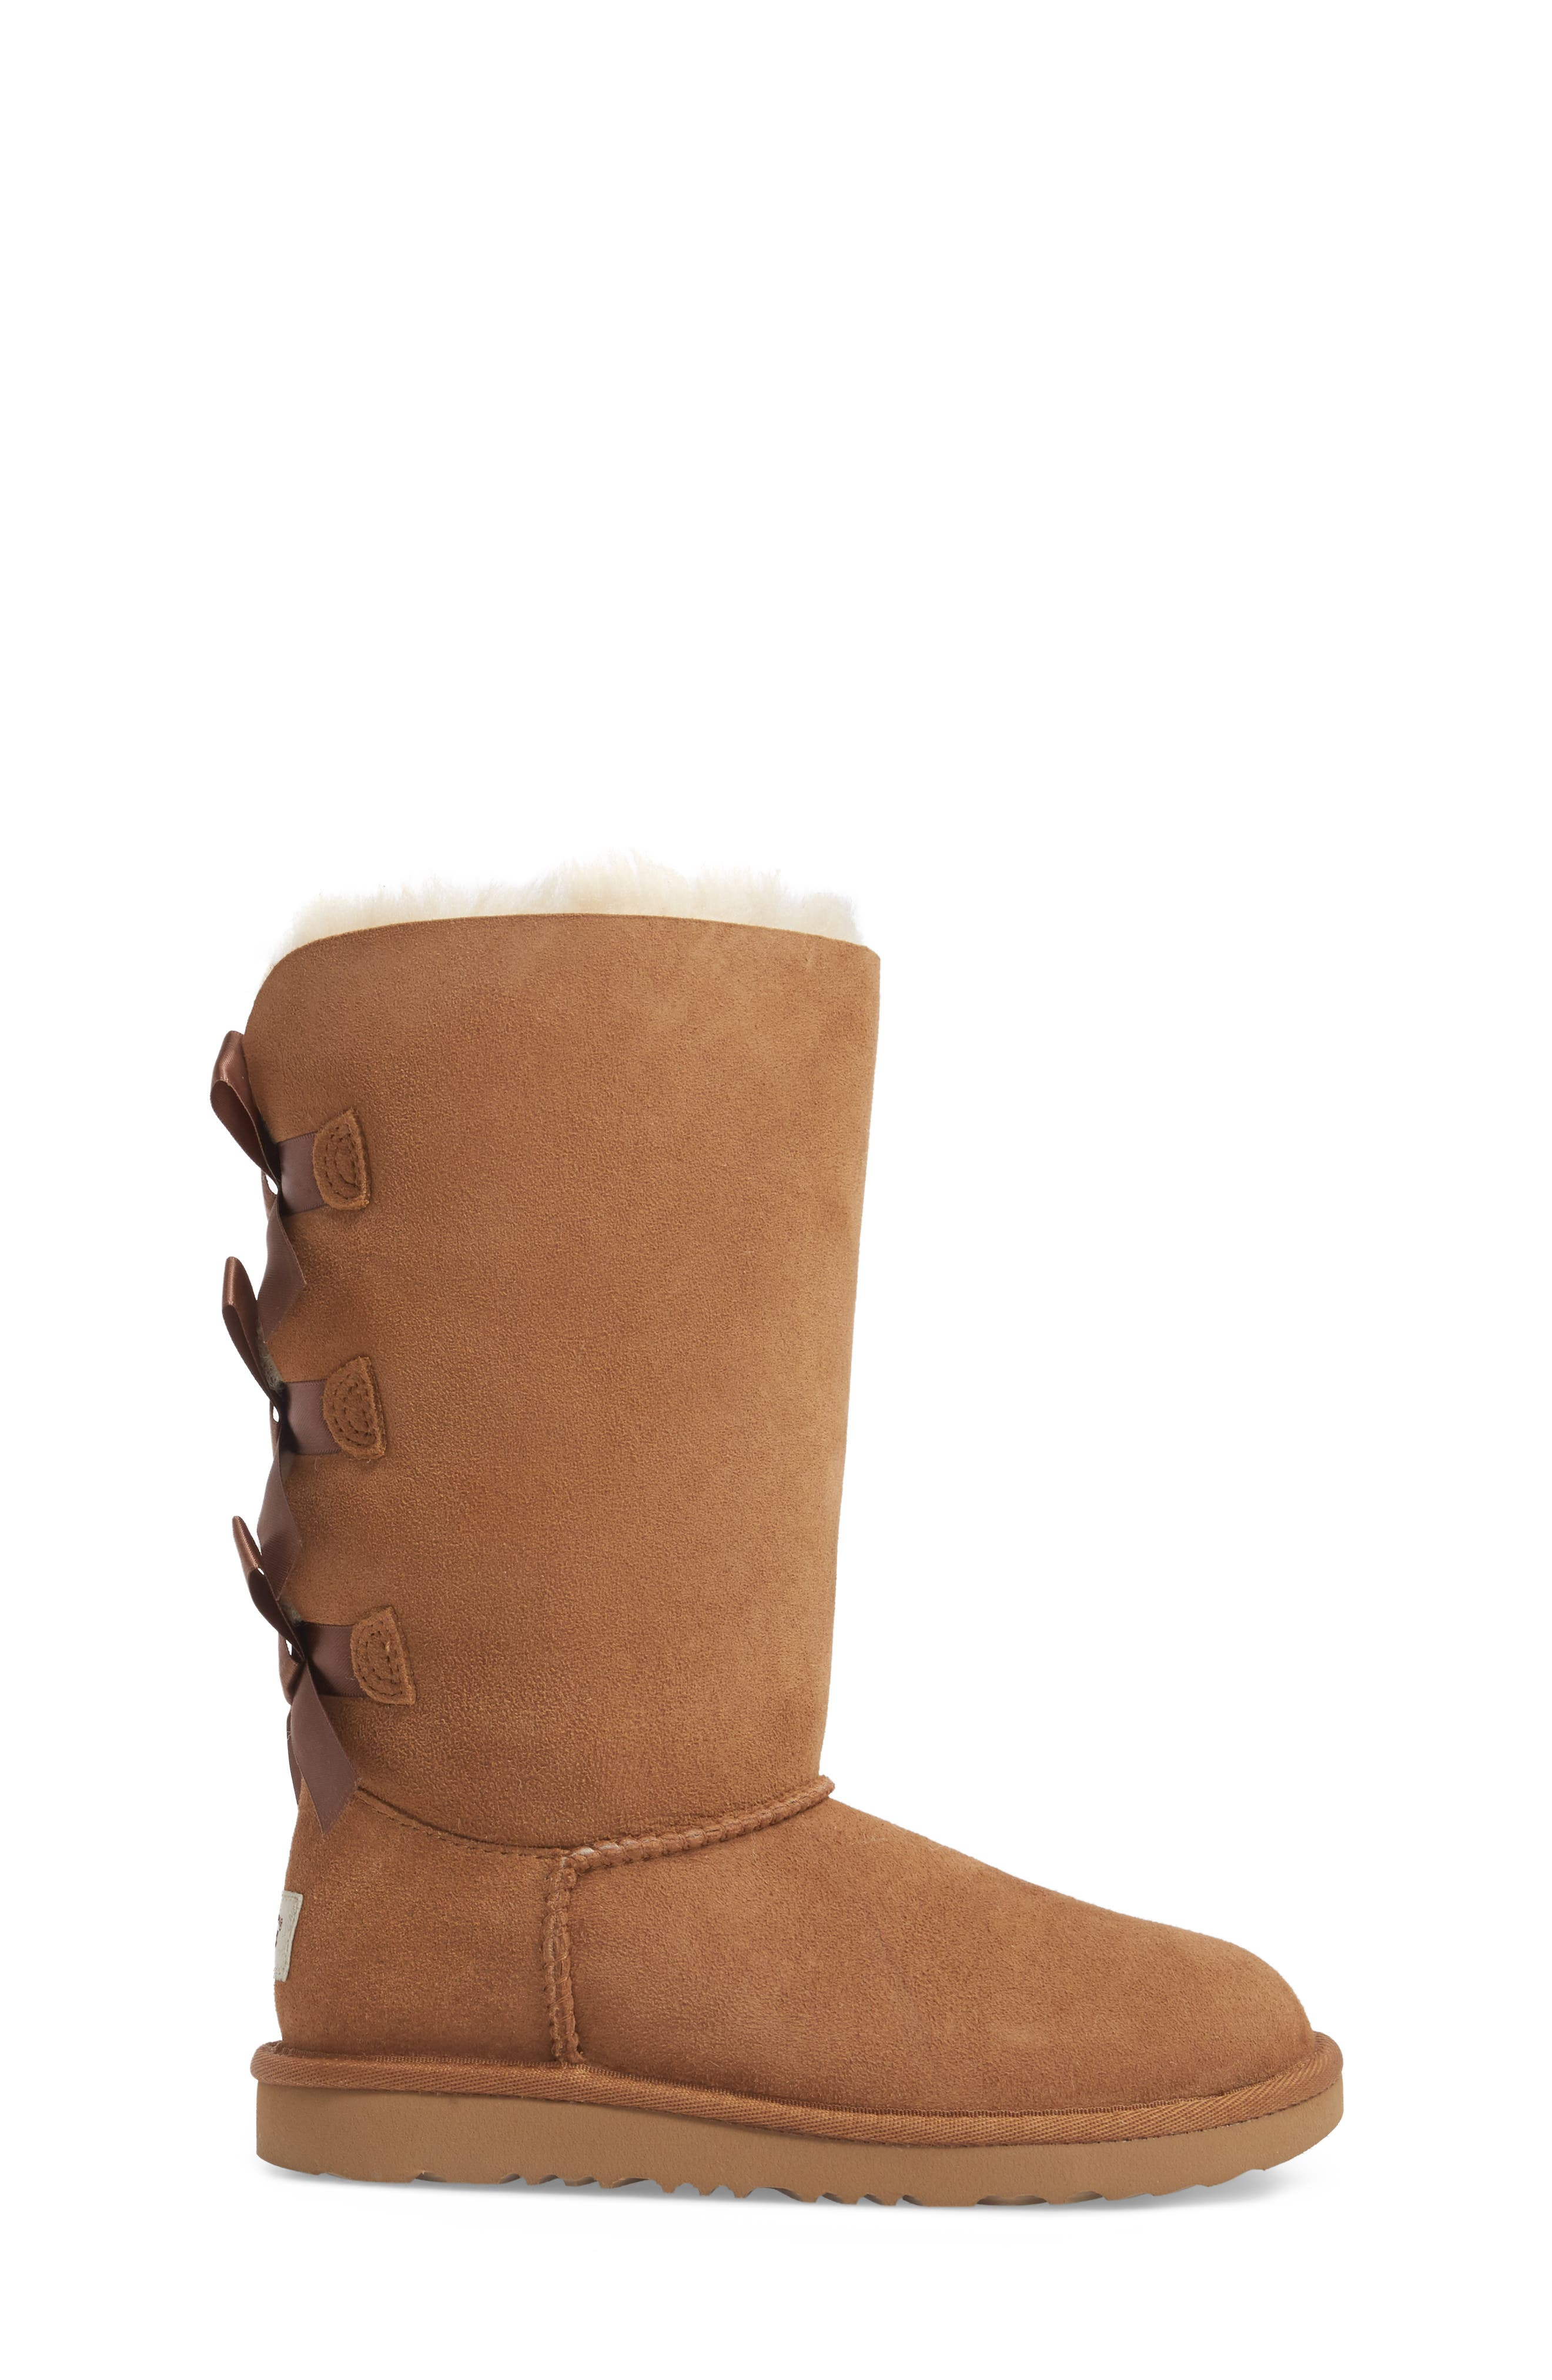 Bailey Bow Tall II Water Resistant Genuine Shearling Boot,                             Alternate thumbnail 3, color,                             Chestnut Brown